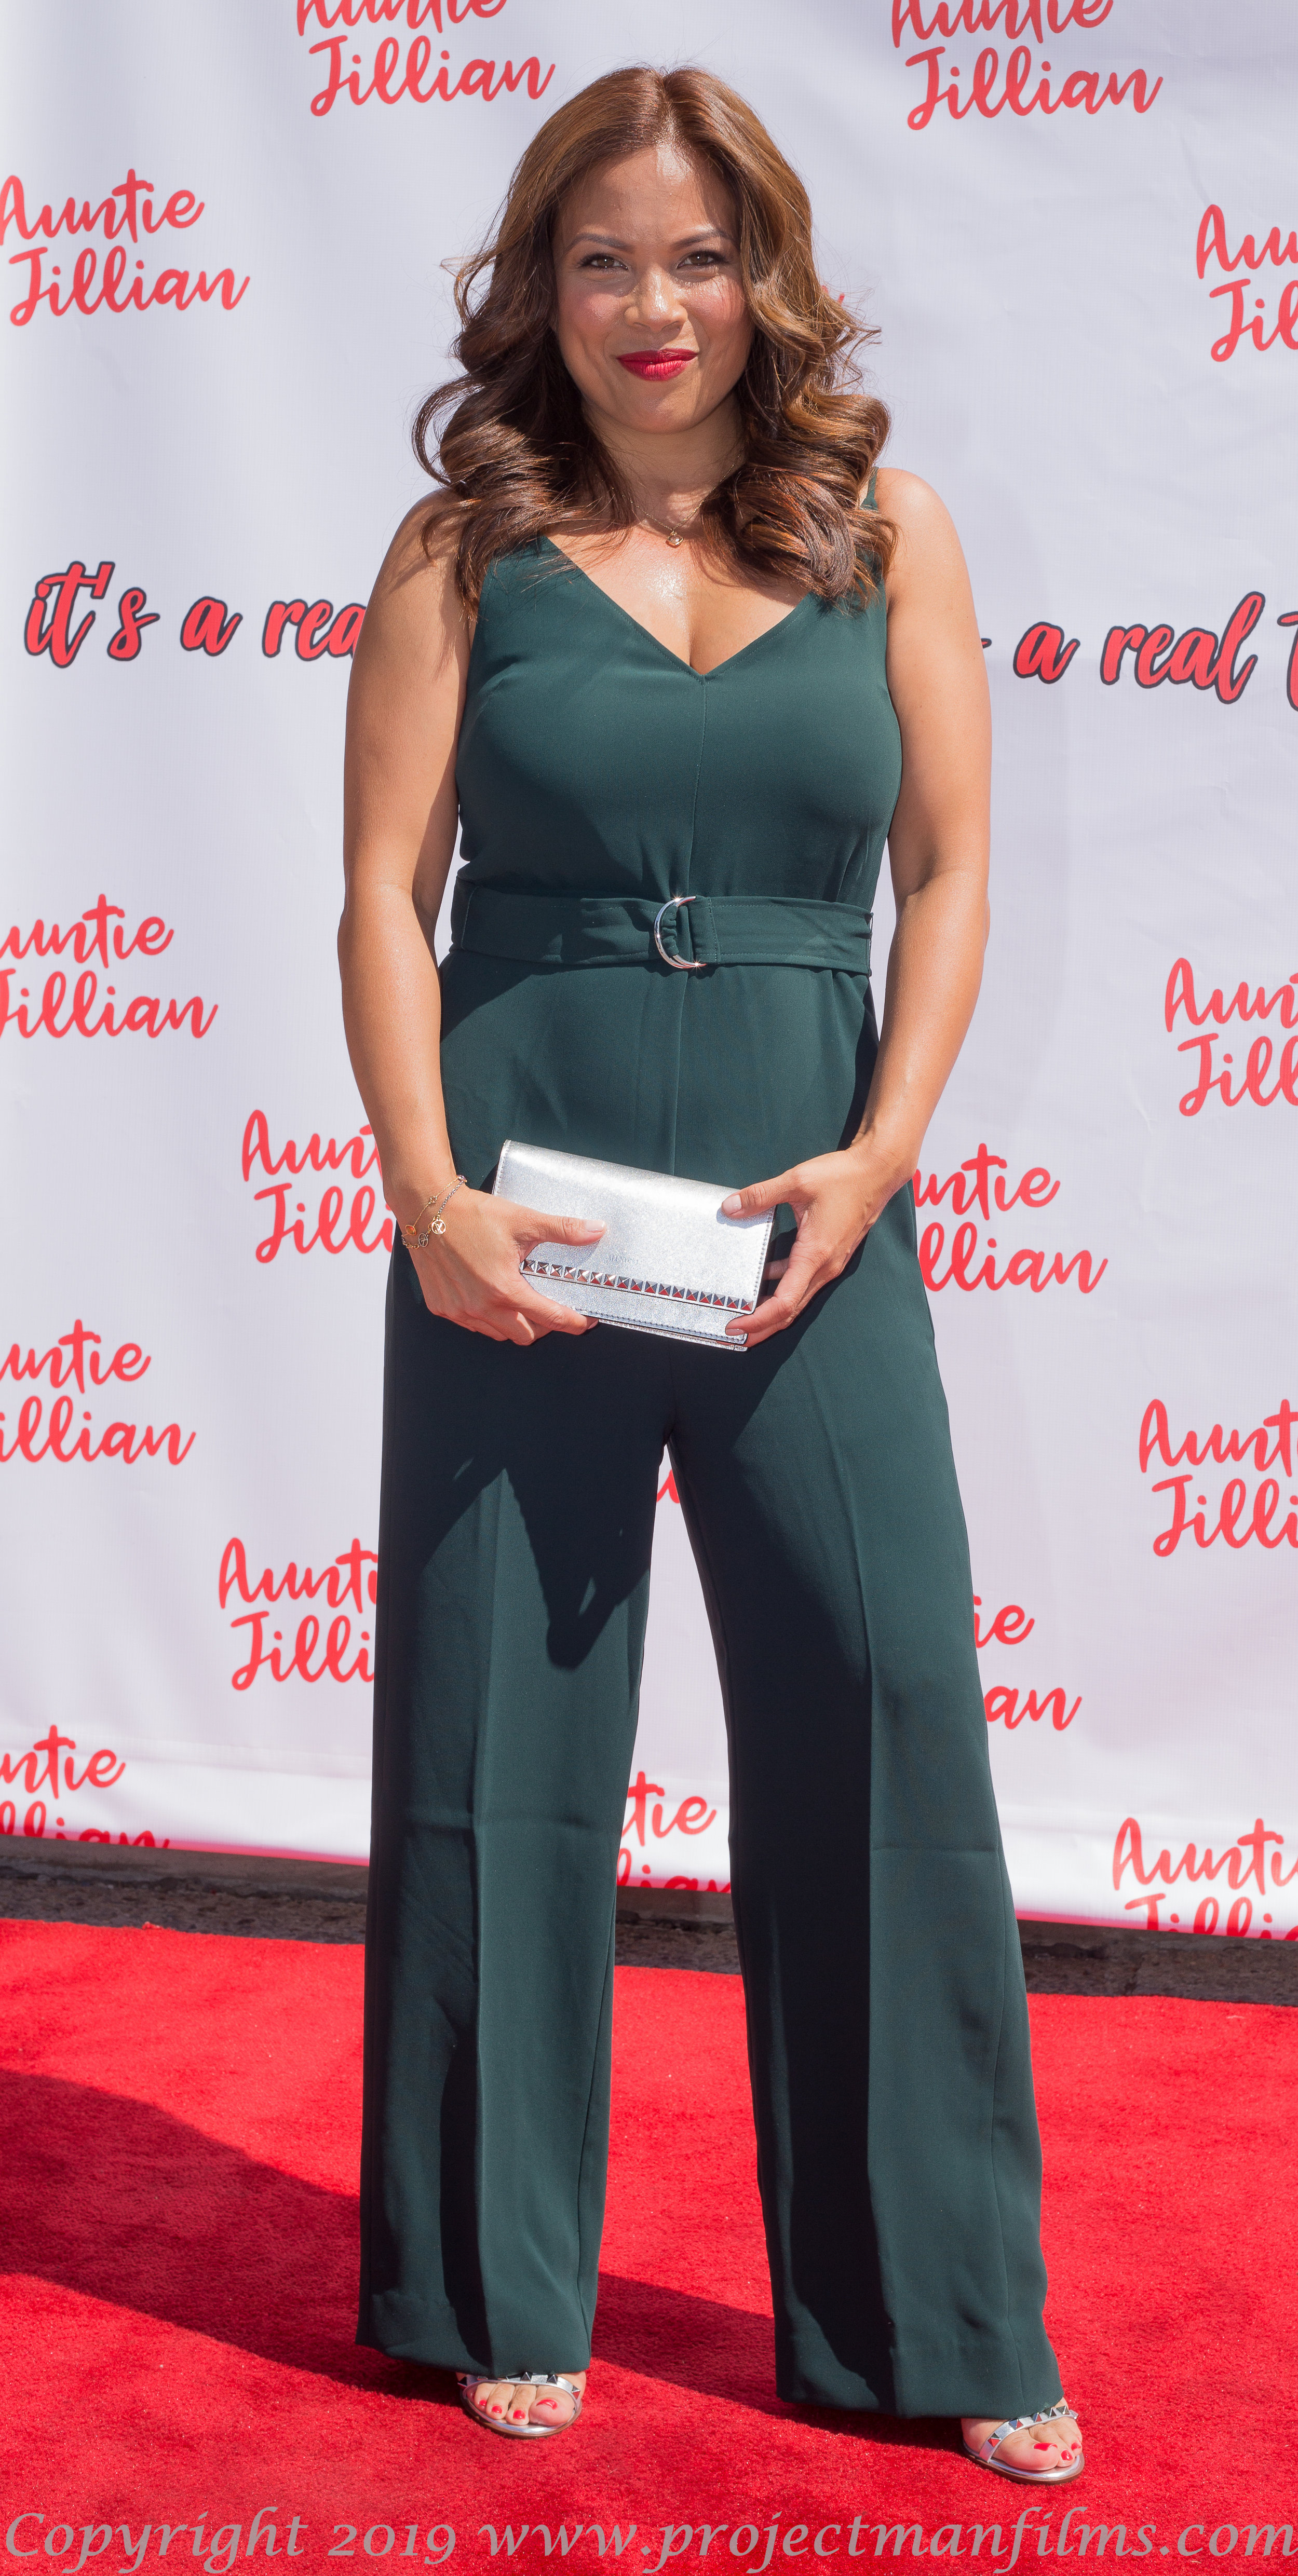 Celestine Caravaggio attends the red carpet event for Ask Auntie Jillian Season 2 premiere |  Courtesy of HNDRSNmarshall Photography